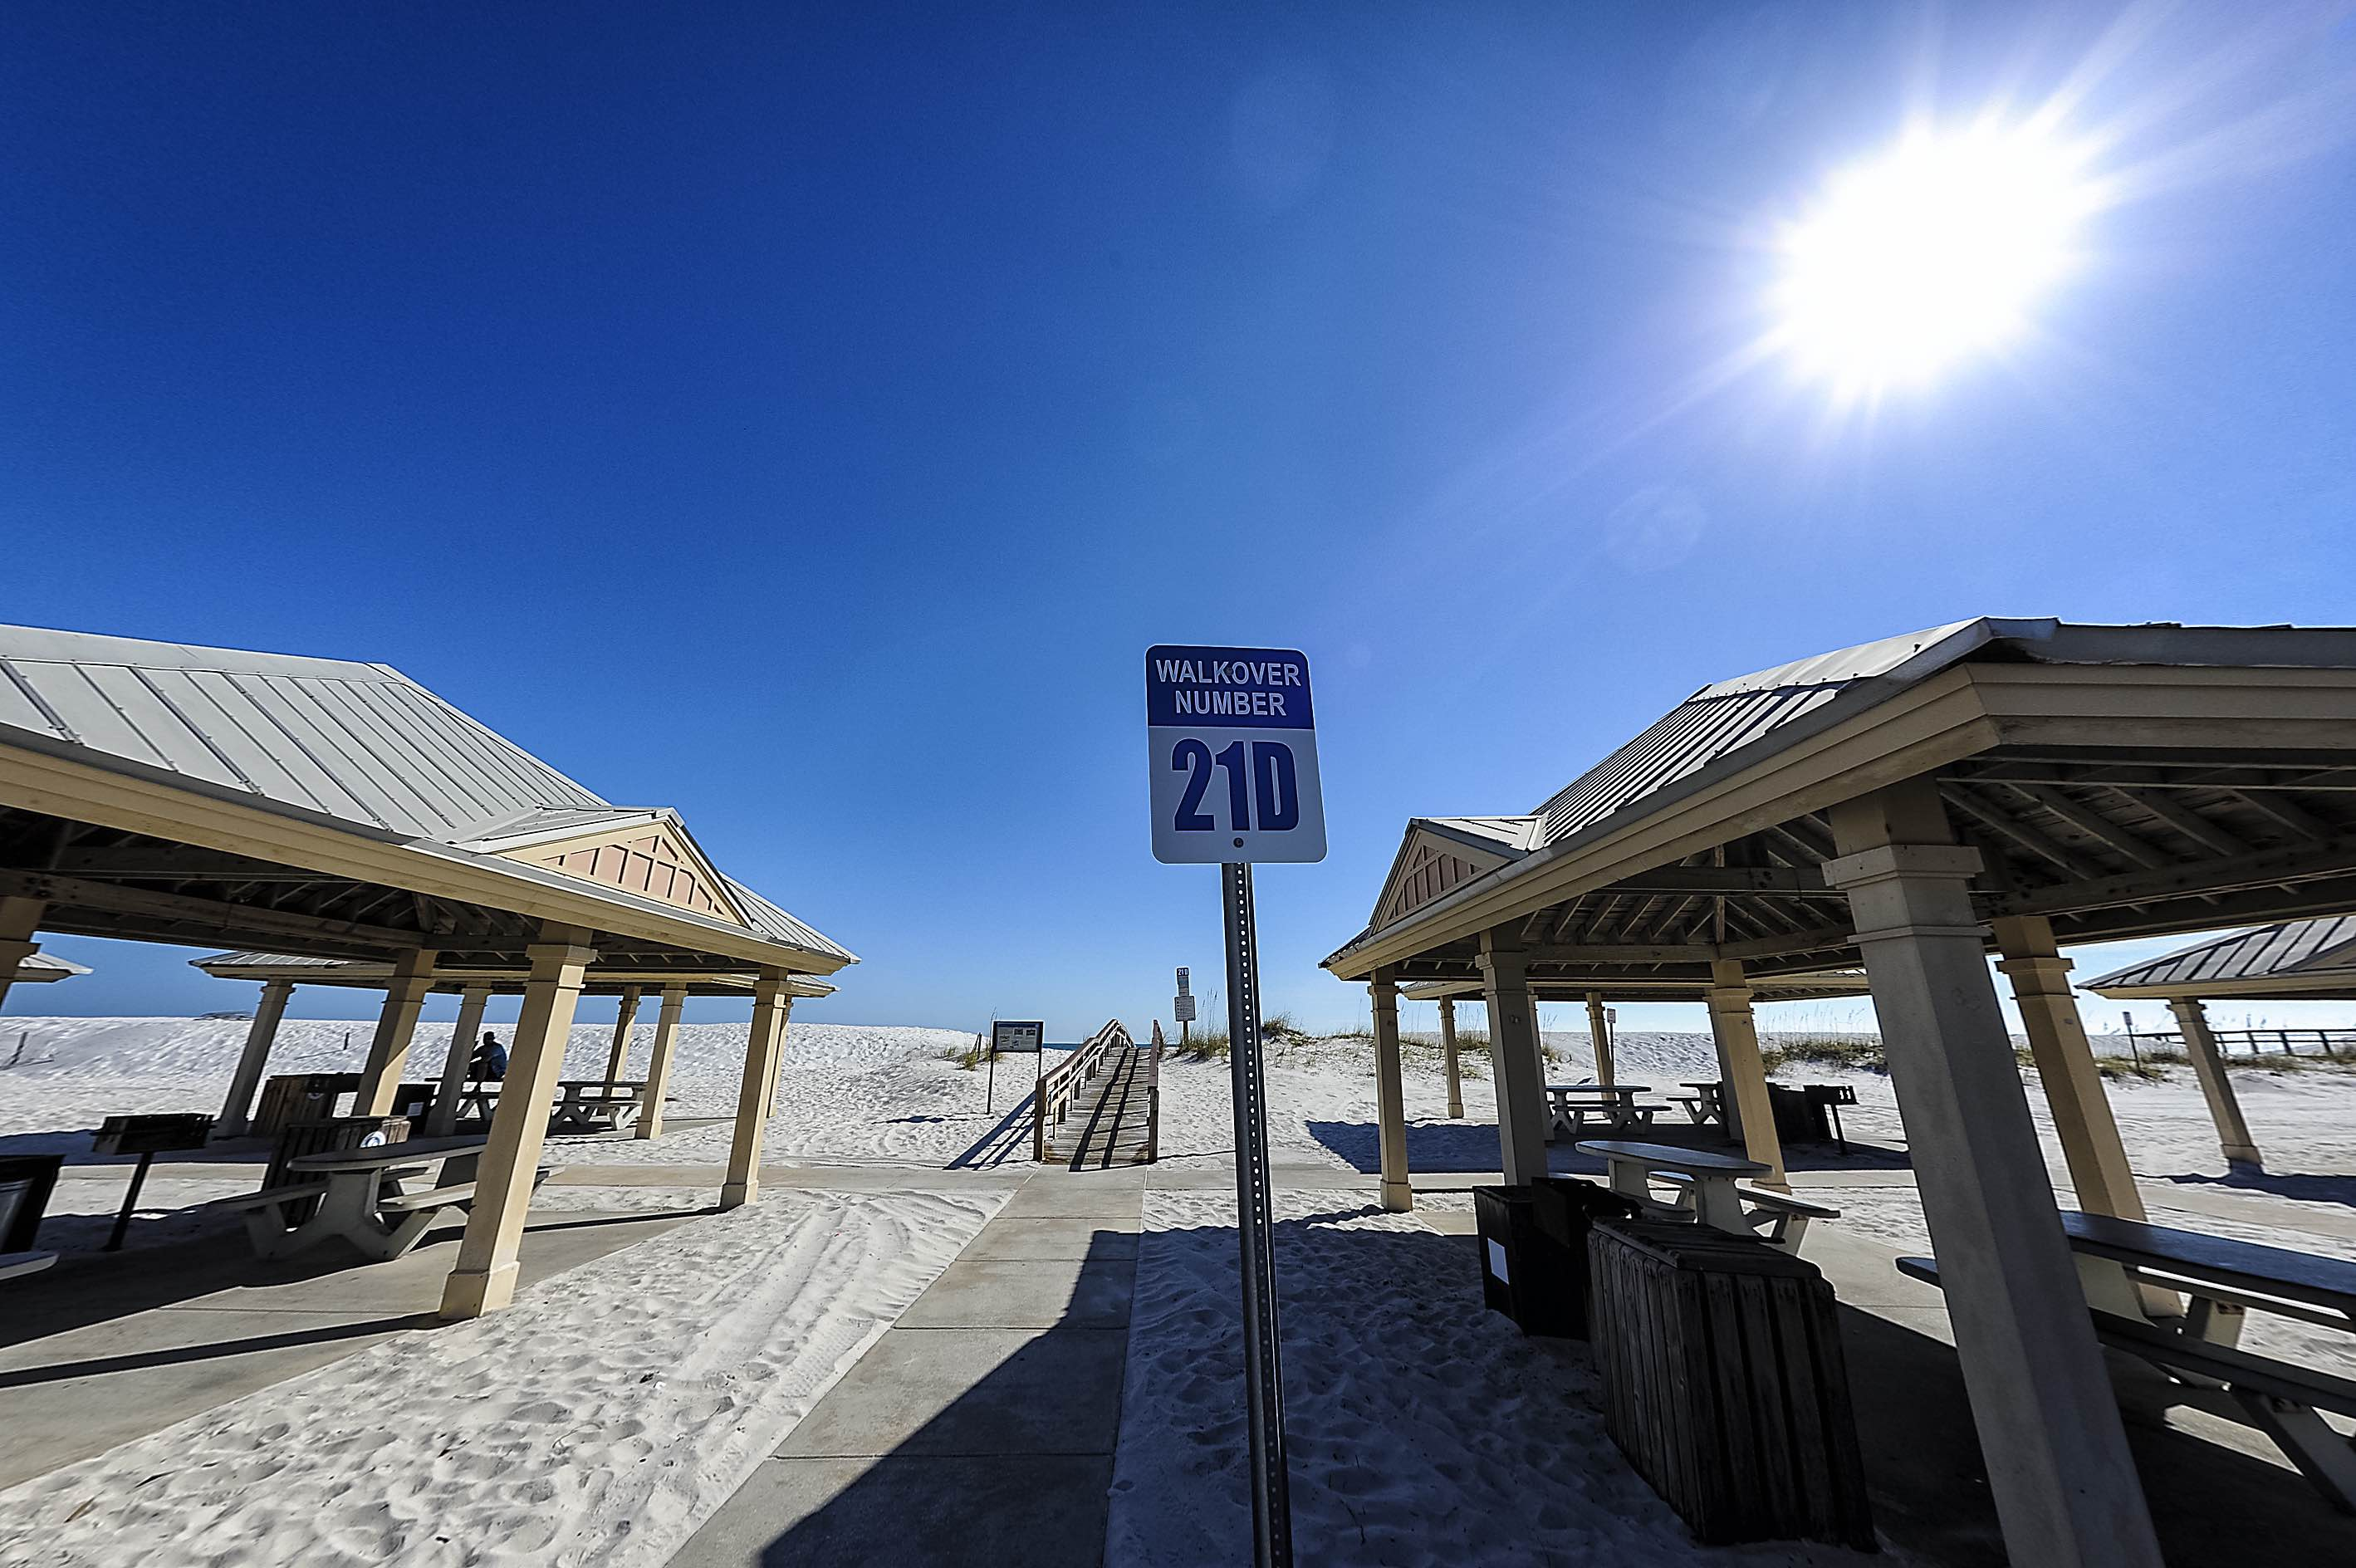 2-Pensacola-Beach-Park-West-21D